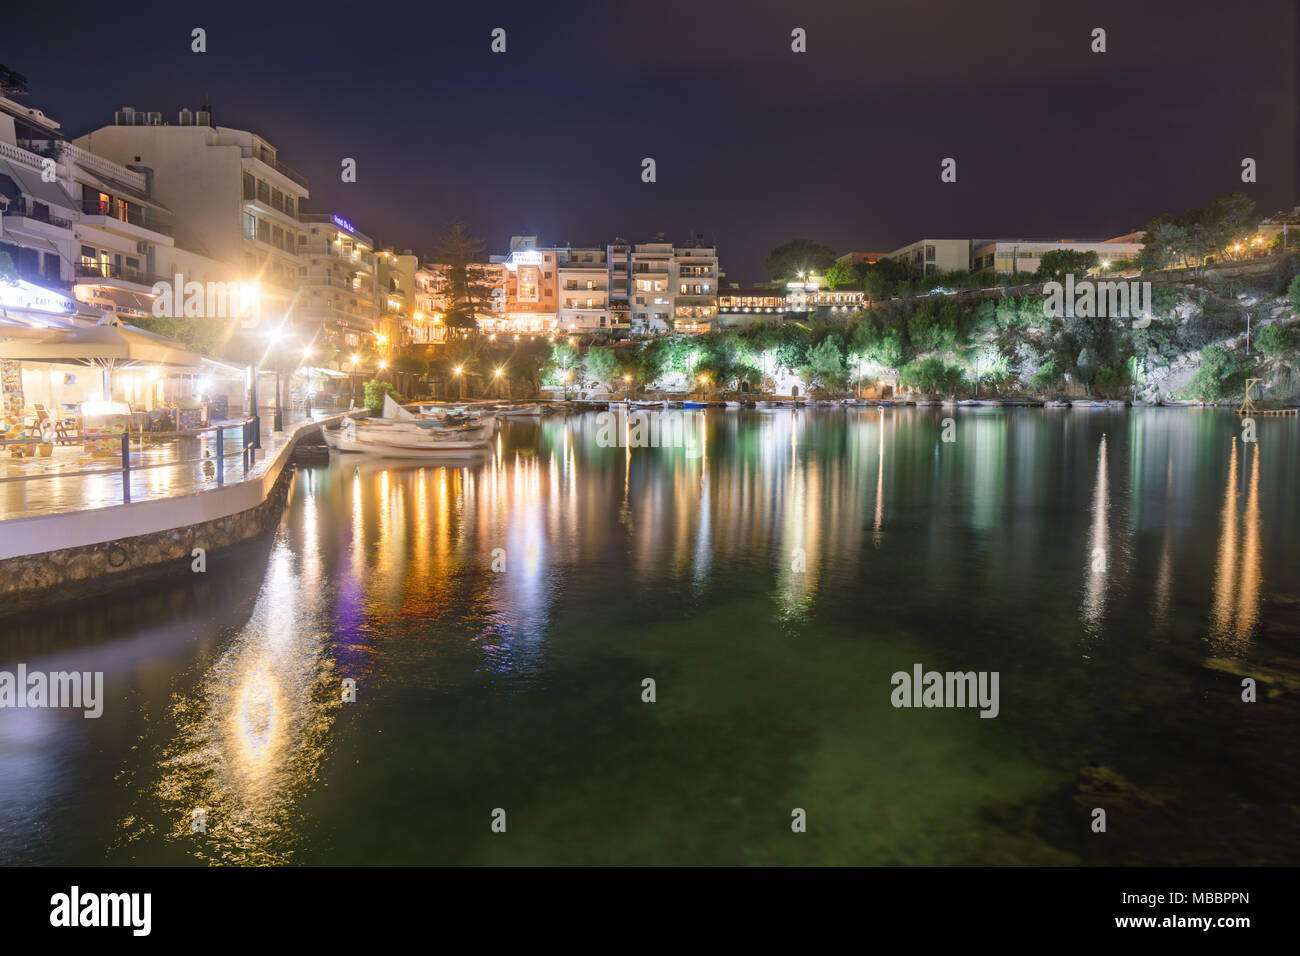 Cityscape with the night view to the lake and water reflections. Agios Nikolaos, Crete, Greece. - Stock Image